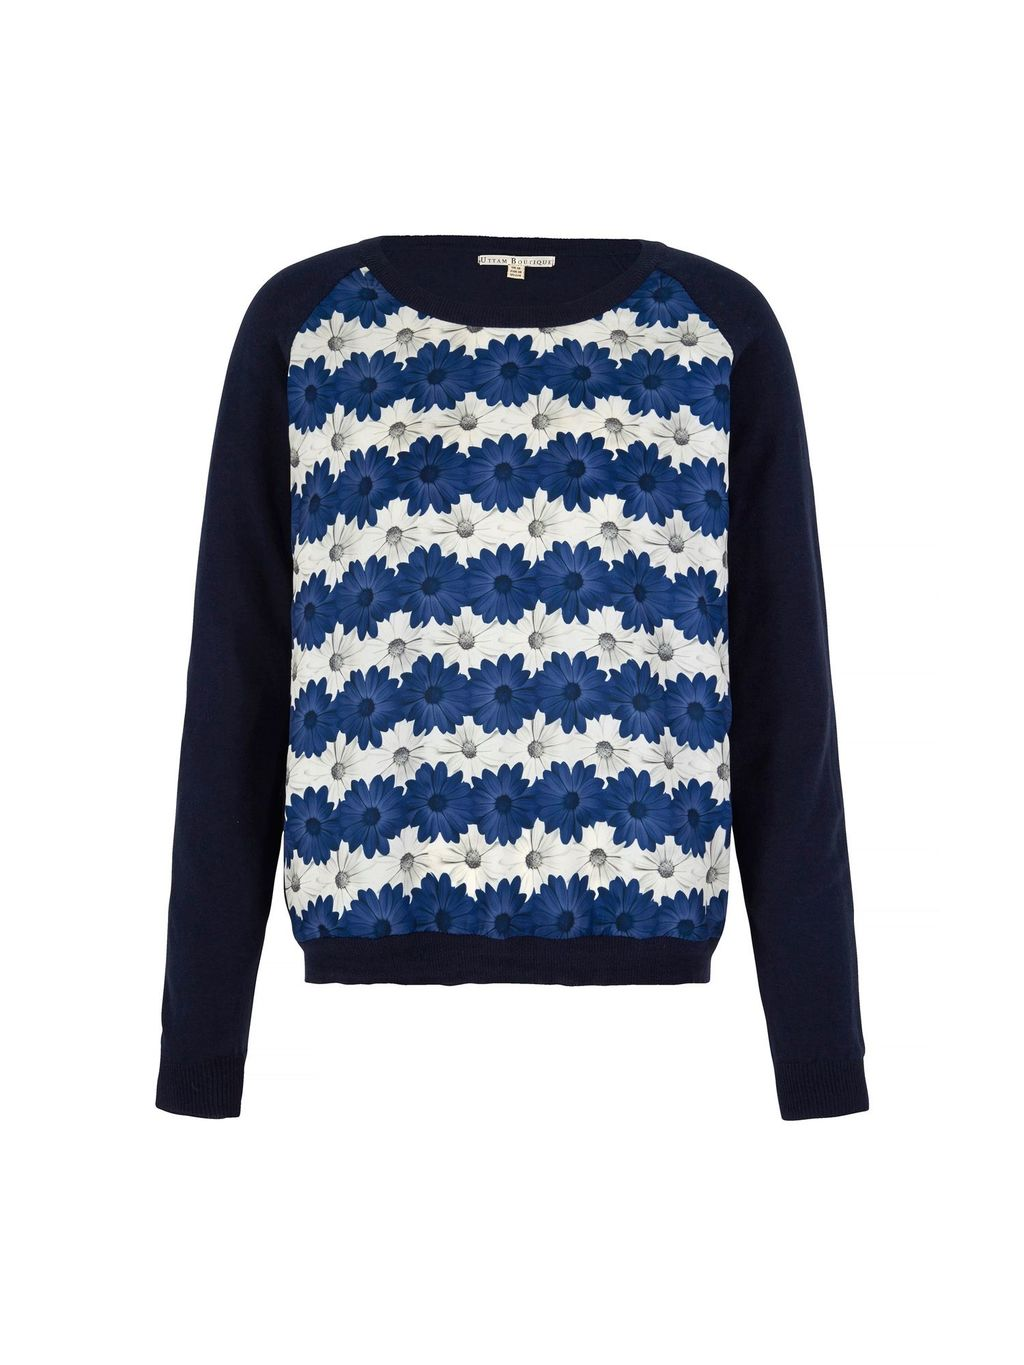 Daisy Stripe Print Jumper, Blue - style: standard; secondary colour: white; predominant colour: royal blue; occasions: casual, creative work; length: standard; fibres: cotton - 100%; fit: standard fit; neckline: crew; sleeve length: long sleeve; sleeve style: standard; texture group: knits/crochet; pattern type: knitted - fine stitch; pattern size: standard; pattern: florals; multicoloured: multicoloured; season: s/s 2016